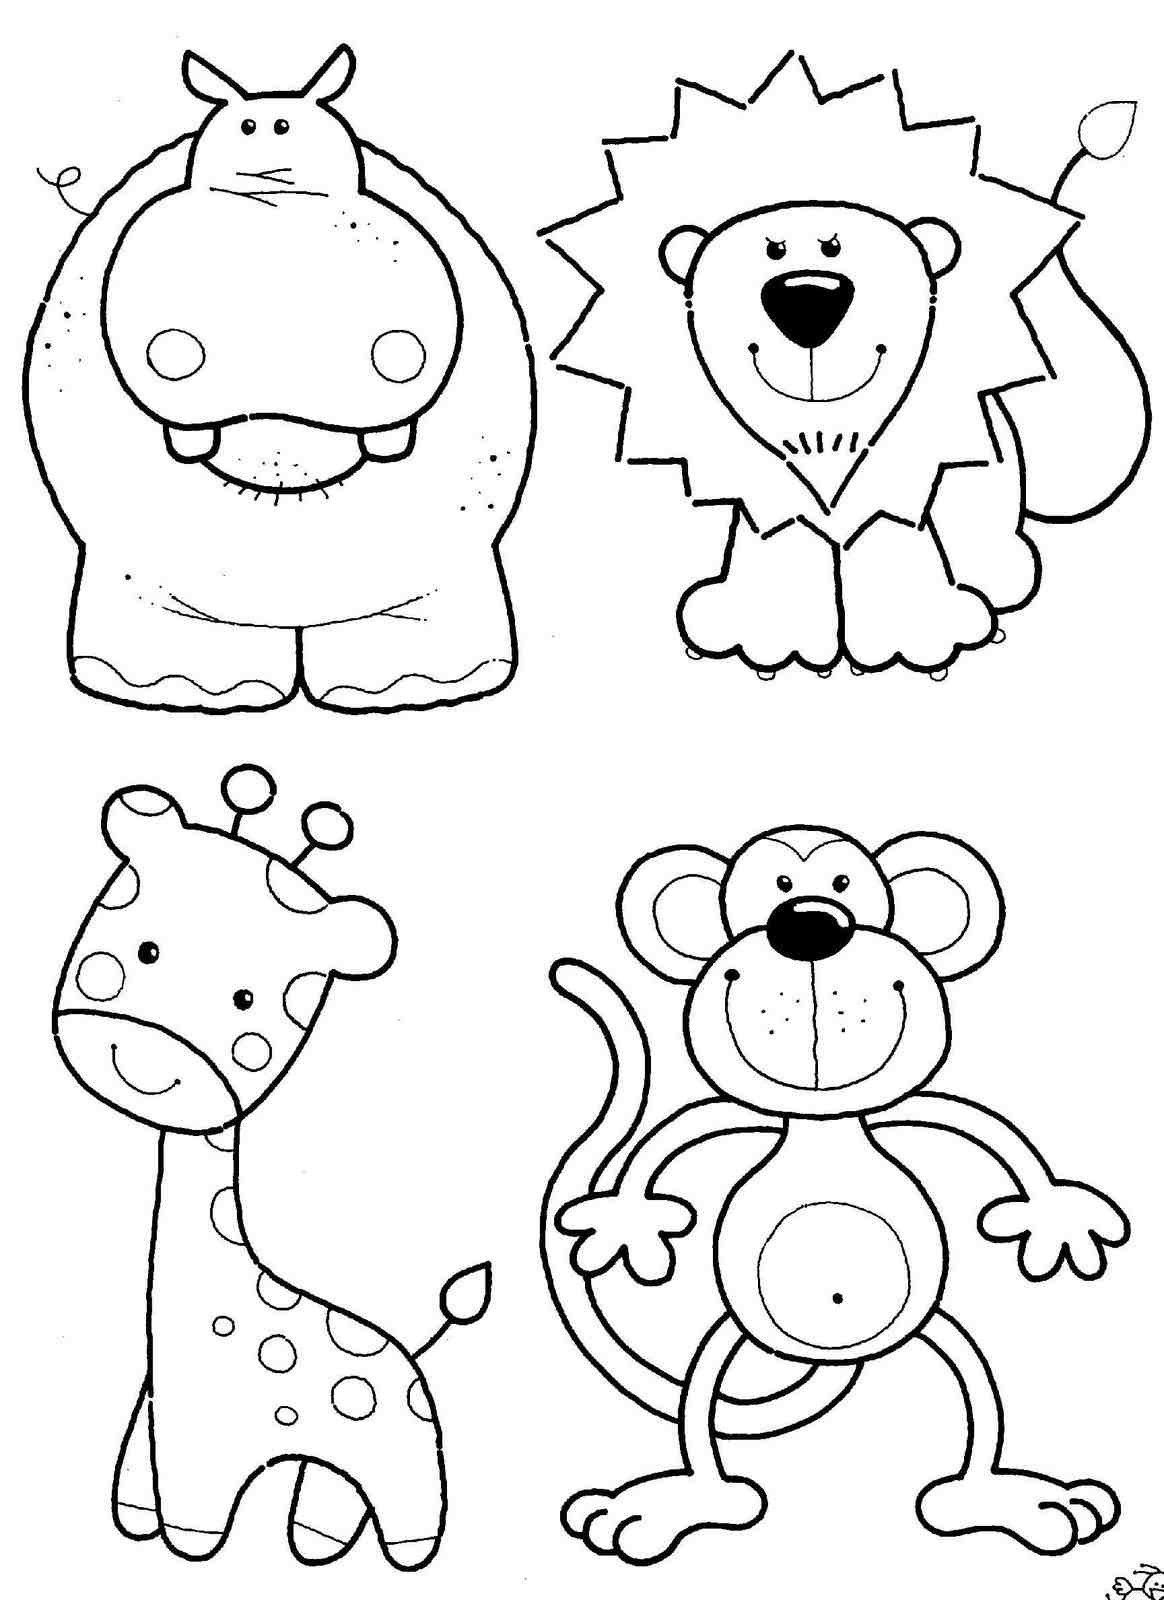 Coloring Worksheet For Preschool New Coloring Animals Coloring Pages For Kids In 2020 Zoo Coloring Pages Zoo Animal Coloring Pages Animal Coloring Books